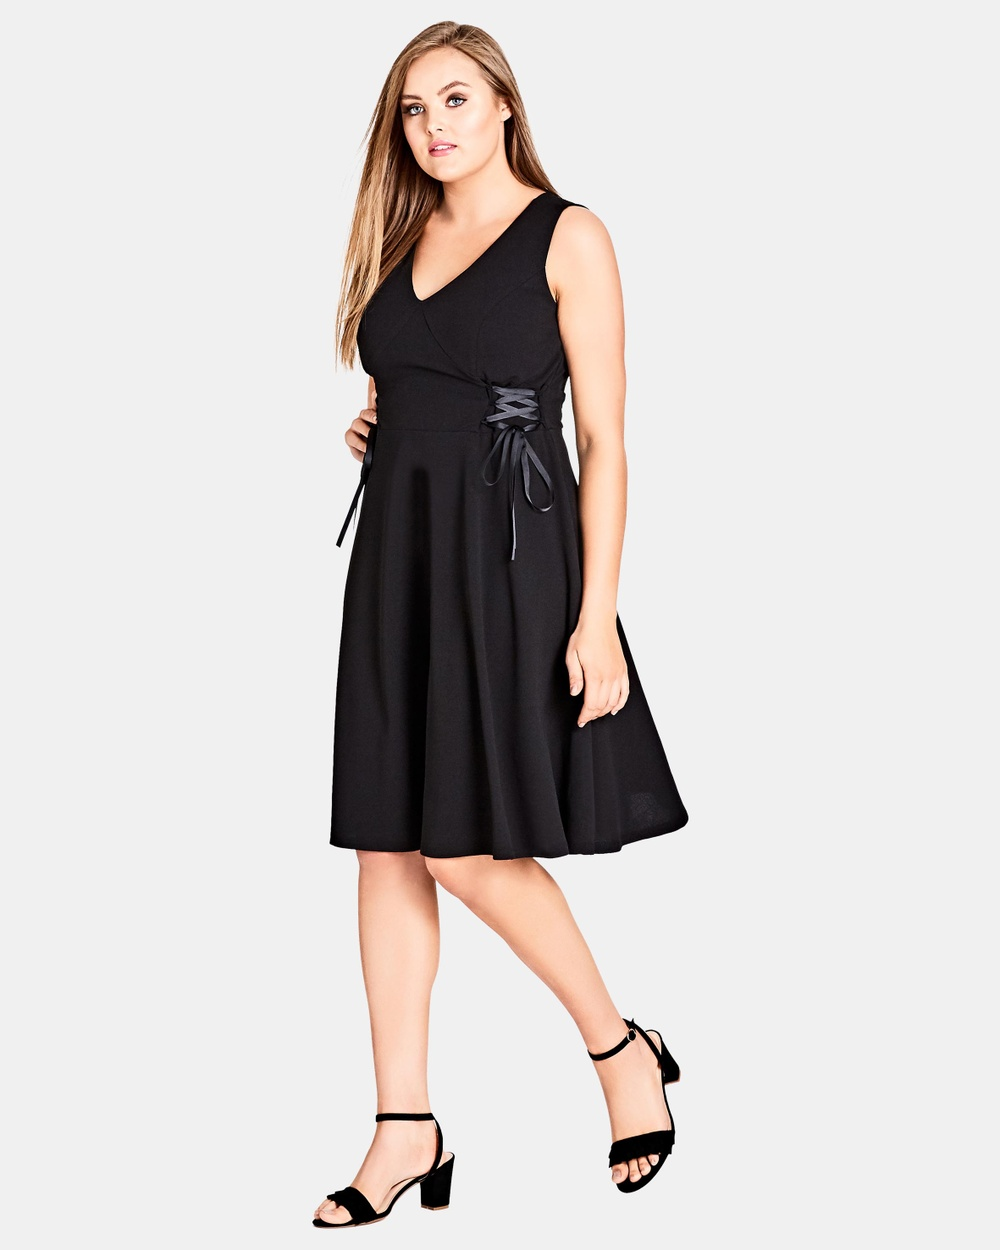 City Chic Side Lace Dress Dresses Black Side Lace Dress